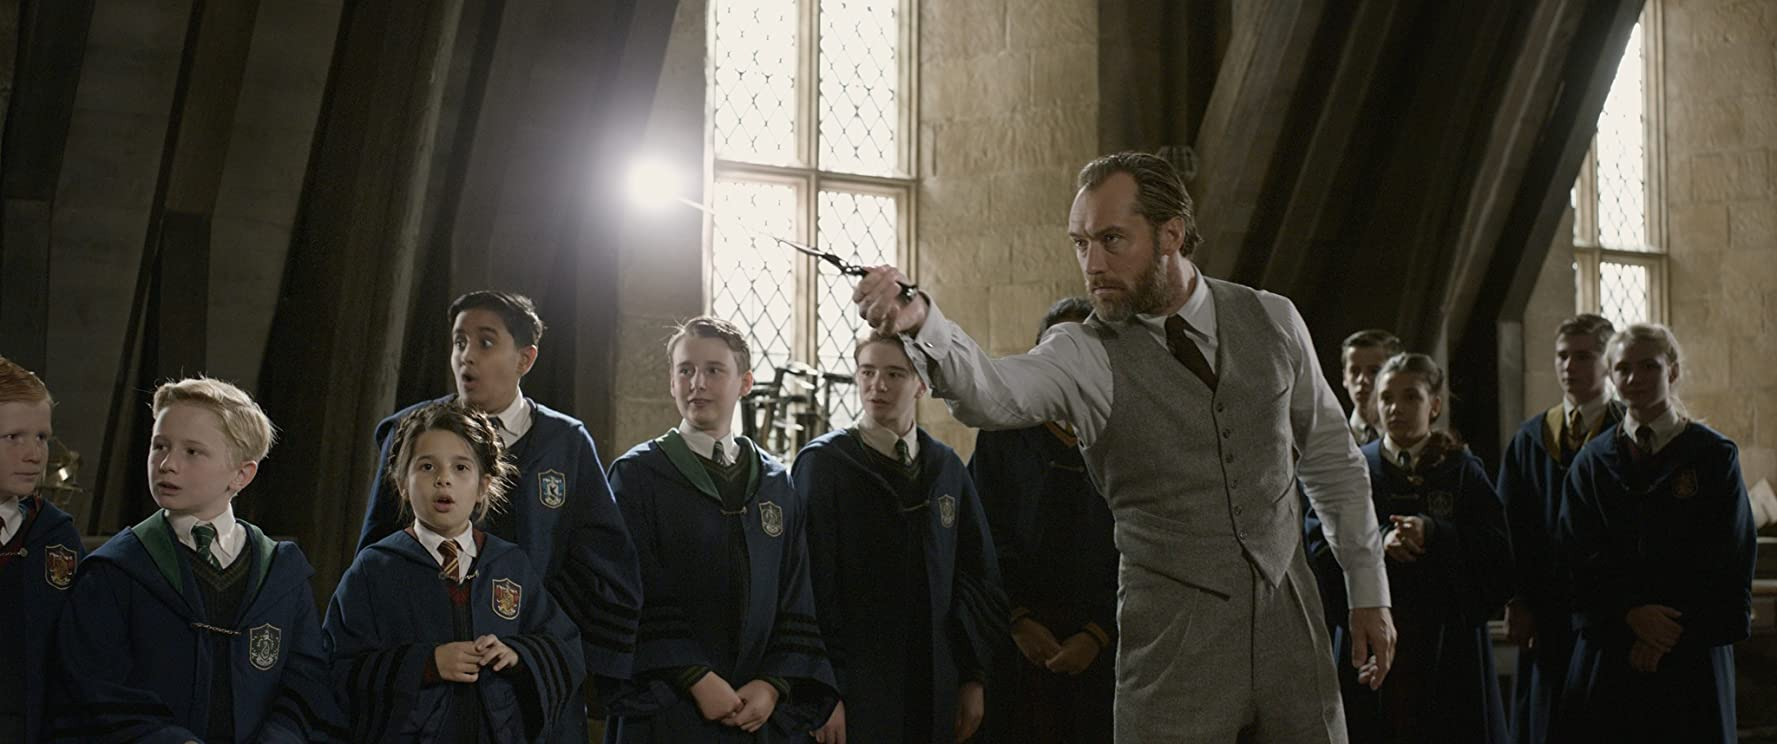 Jude Law in Fantastic Beasts: The Crimes of Grindelwald (2018)